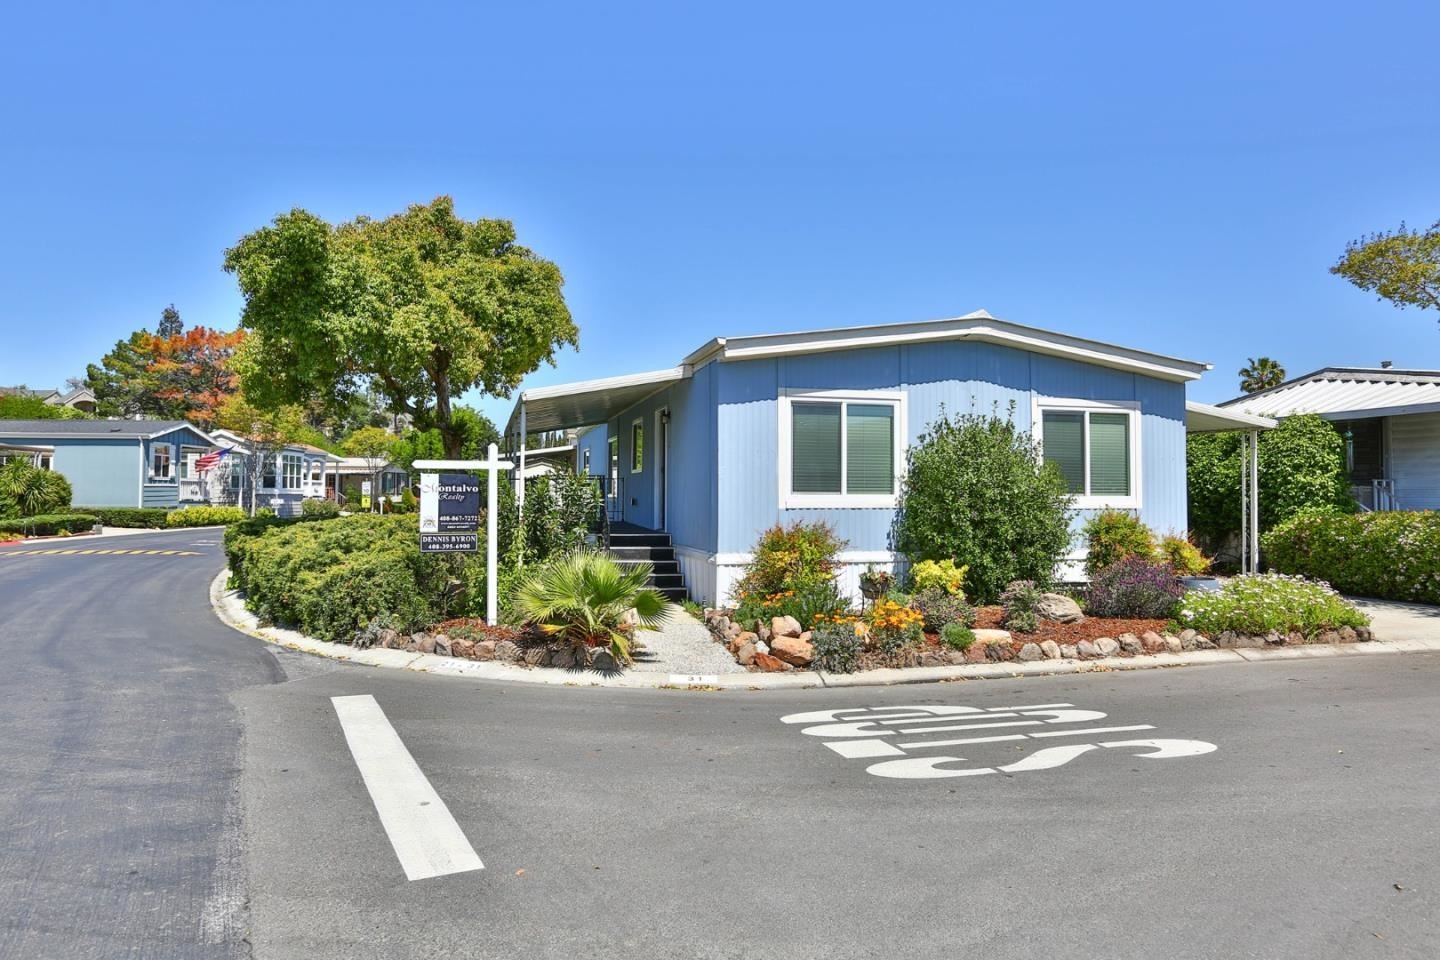 31 Timber Cove Drive, Campbell, CA 95008 - MLS#: ML81836257